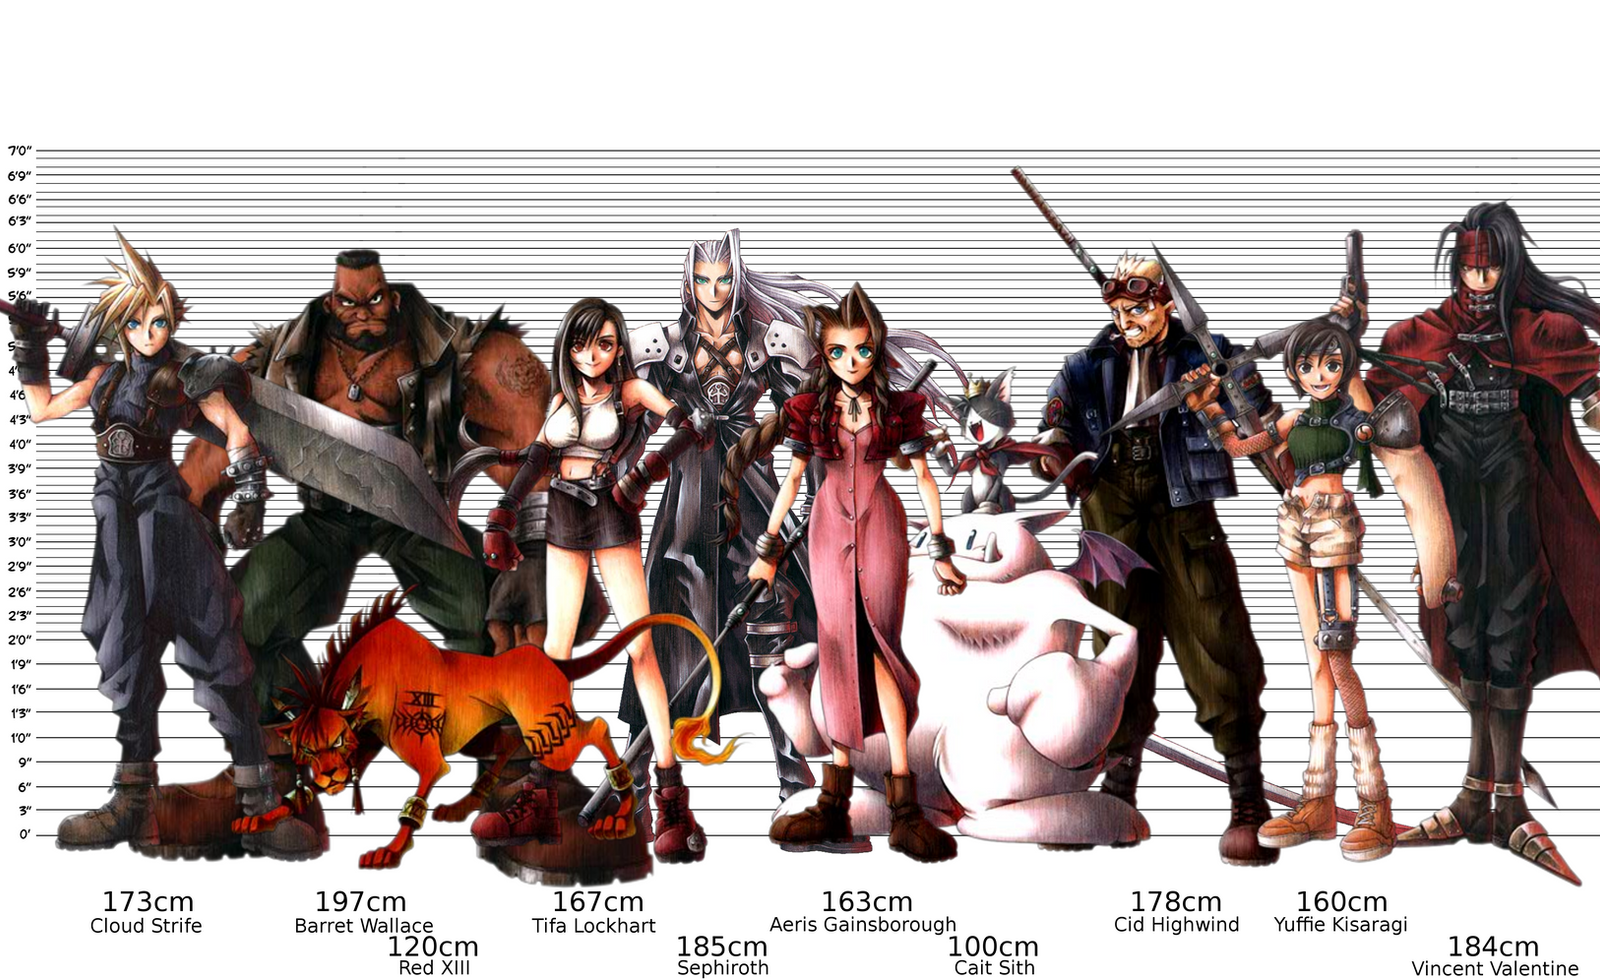 final fantasy vii character height chart by blageyt on